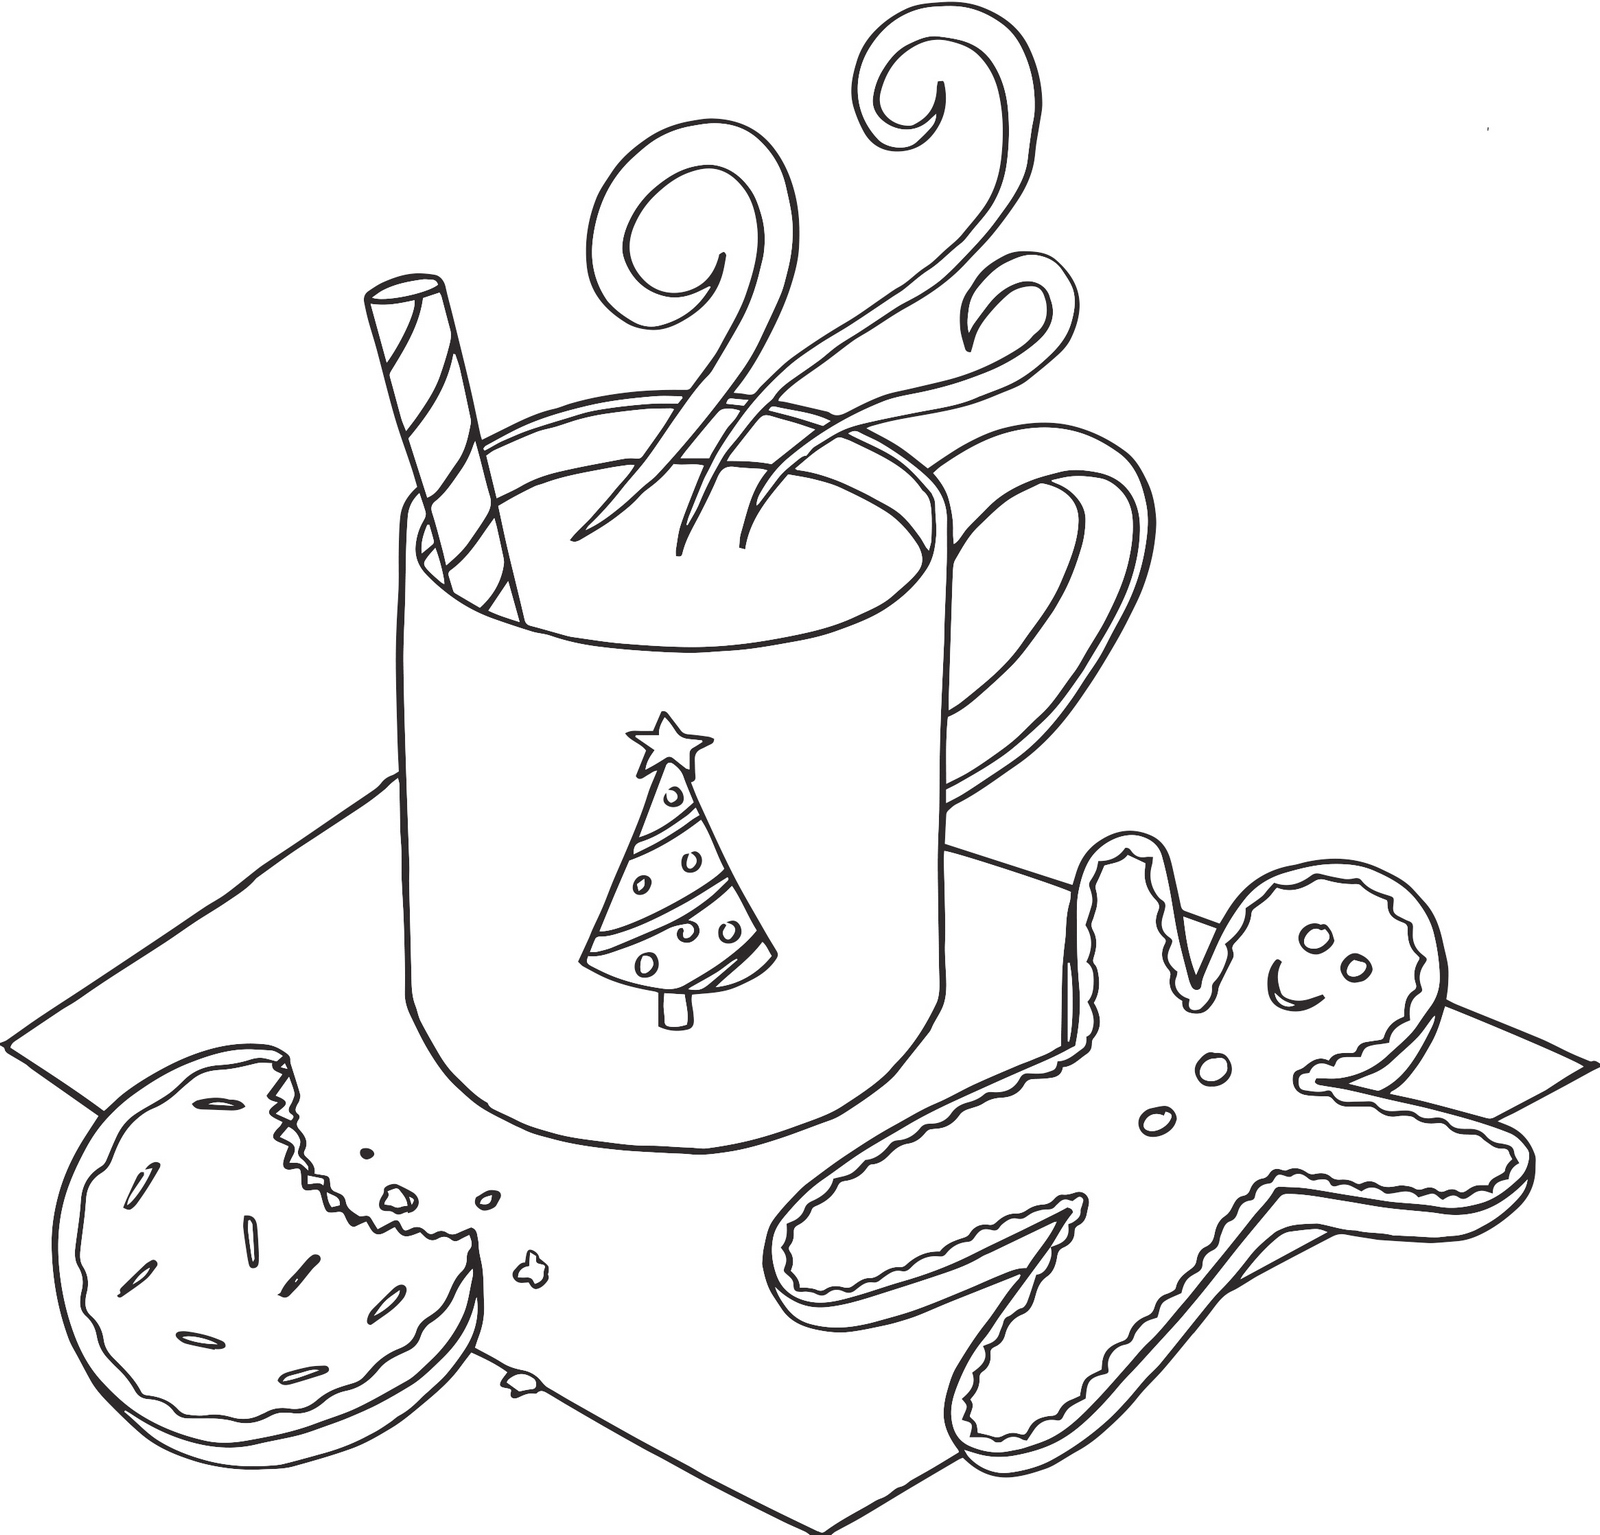 December Coloring Pages Best Coloring Pages For Kids